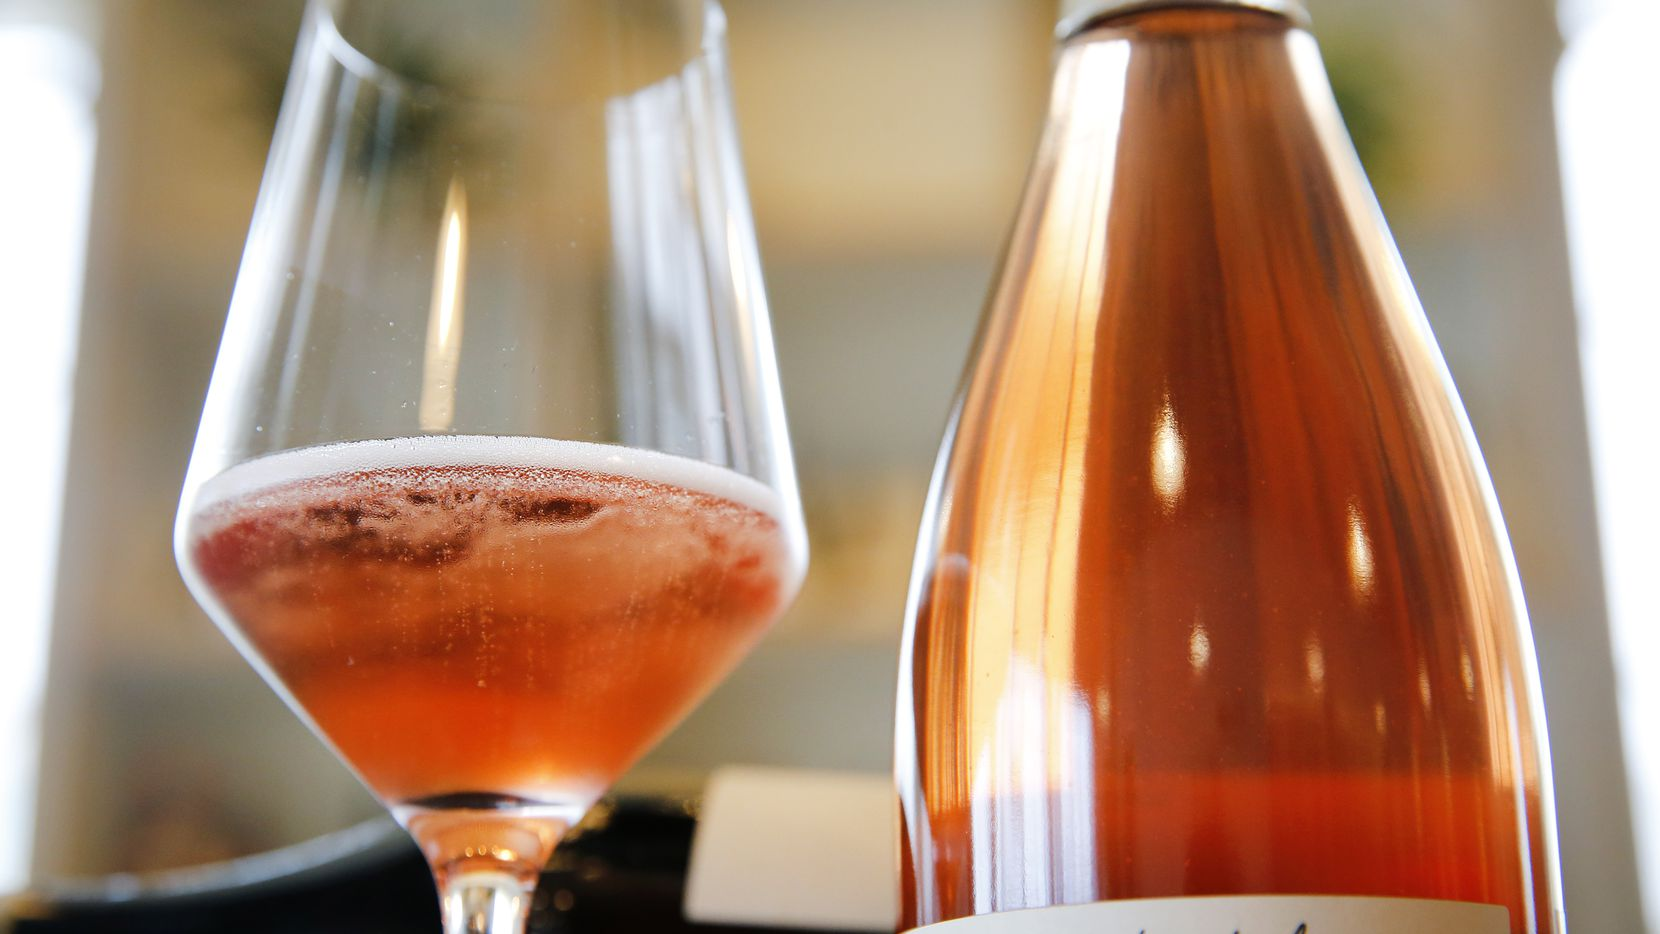 Bar & Garden is known for its 100% organic selection of wines, like this Les Capriades Piège à Filles Rosé, a natural wine.